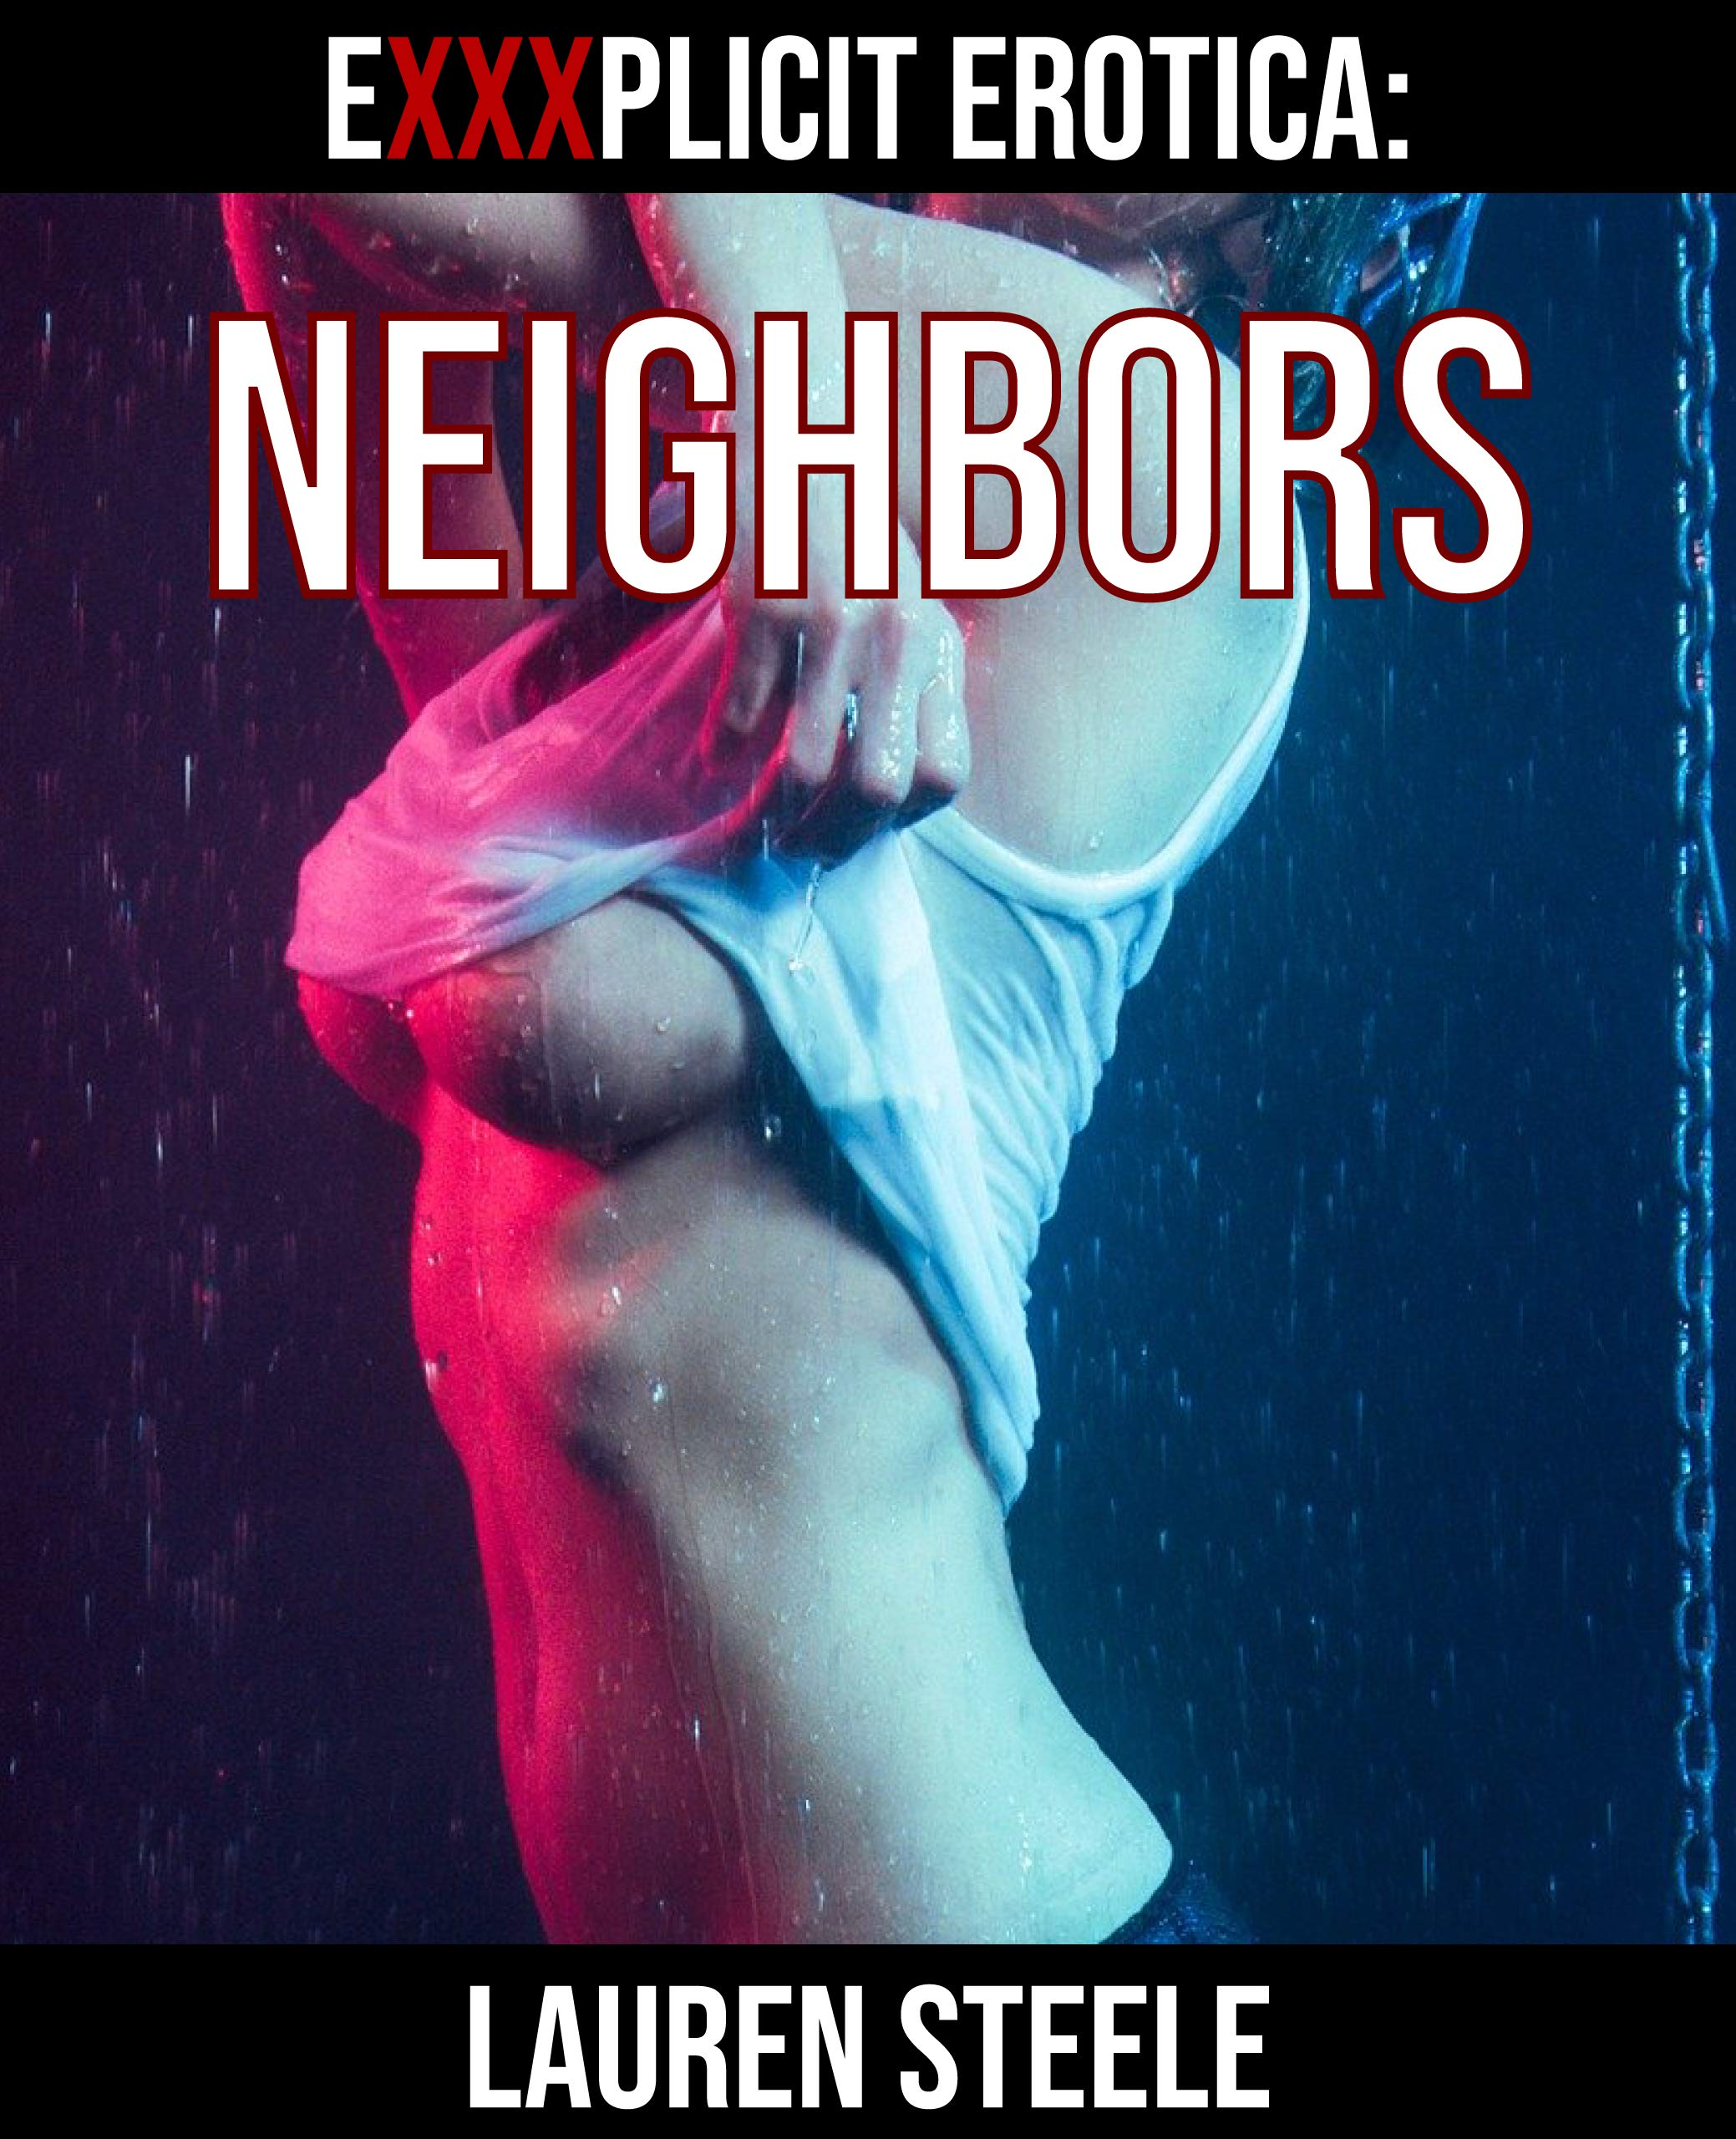 EXPLICIT EROTICA: NEIGHBORS: The Best Sex Stories About Neighbors, Erotic Fantasy, Erotica stories, Collection of Adult Sex Stories and Rough Erotica Sex Stories, Short Sex Explicit Stories